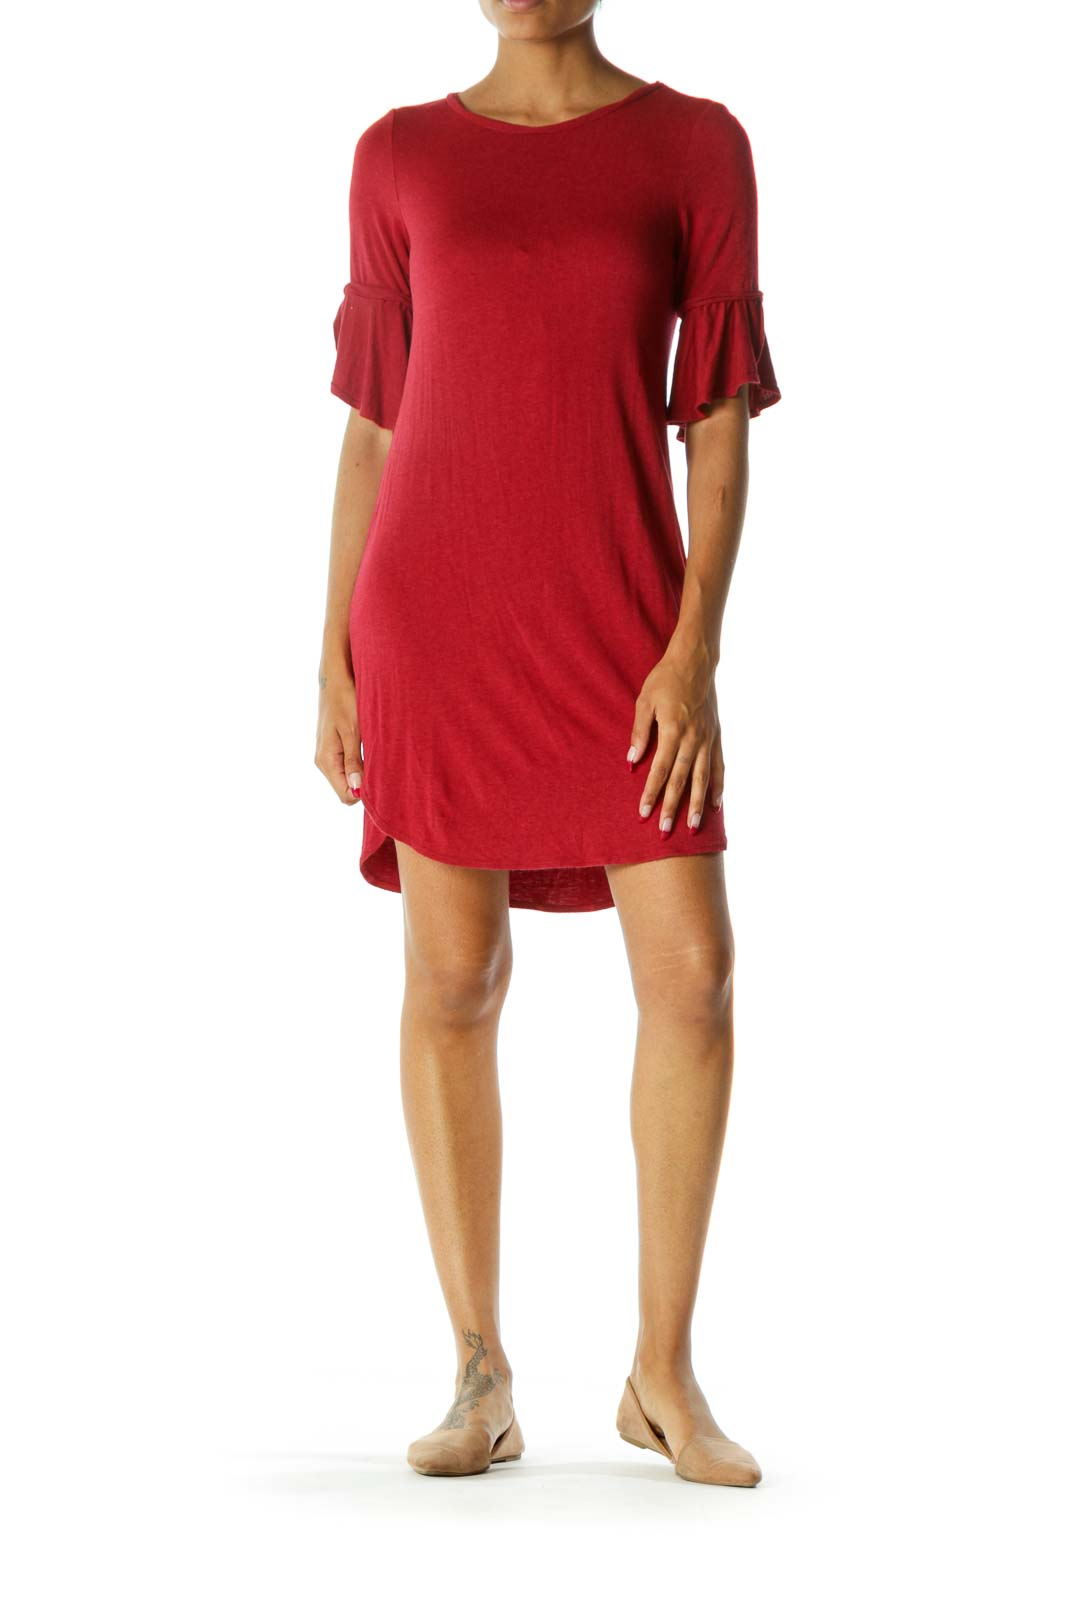 Red Round Neck 3/4 Sleeve Soft Jersey Knit Dress